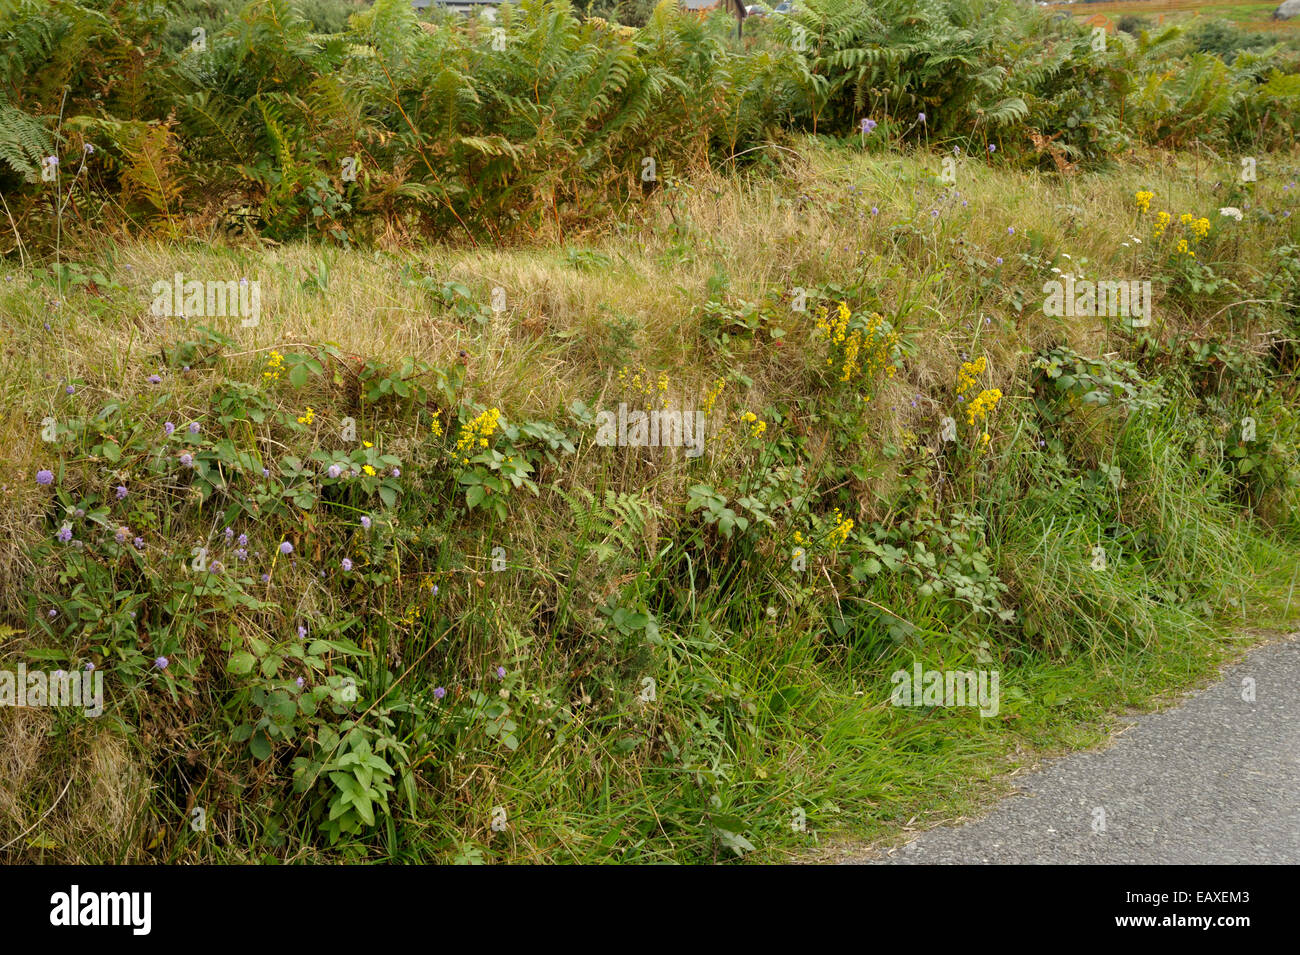 Hedgerow with Golden Rod and Devil's Bit Scabious, Bere Island - Stock Image